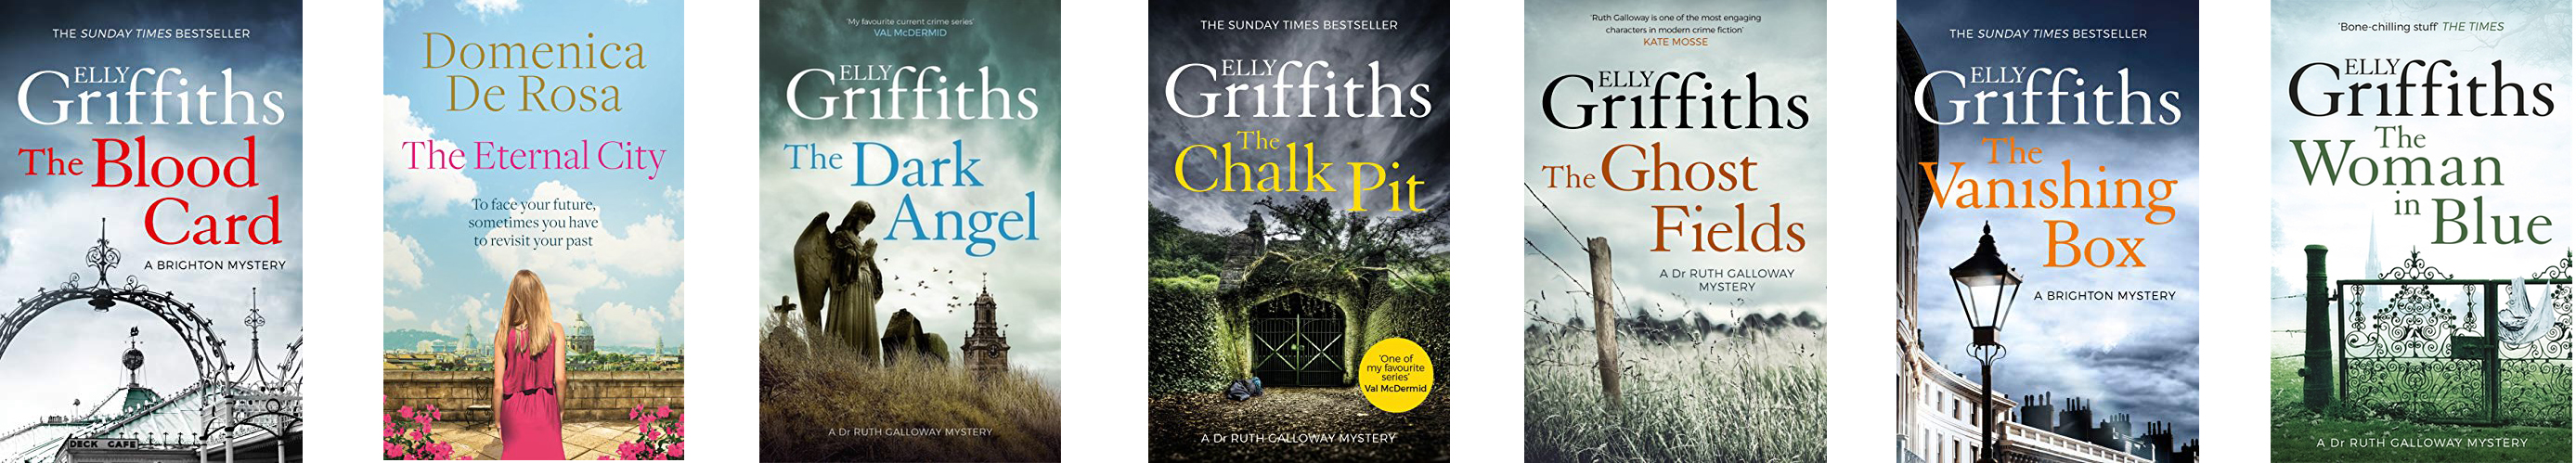 Covers of books by Elly Griffiths